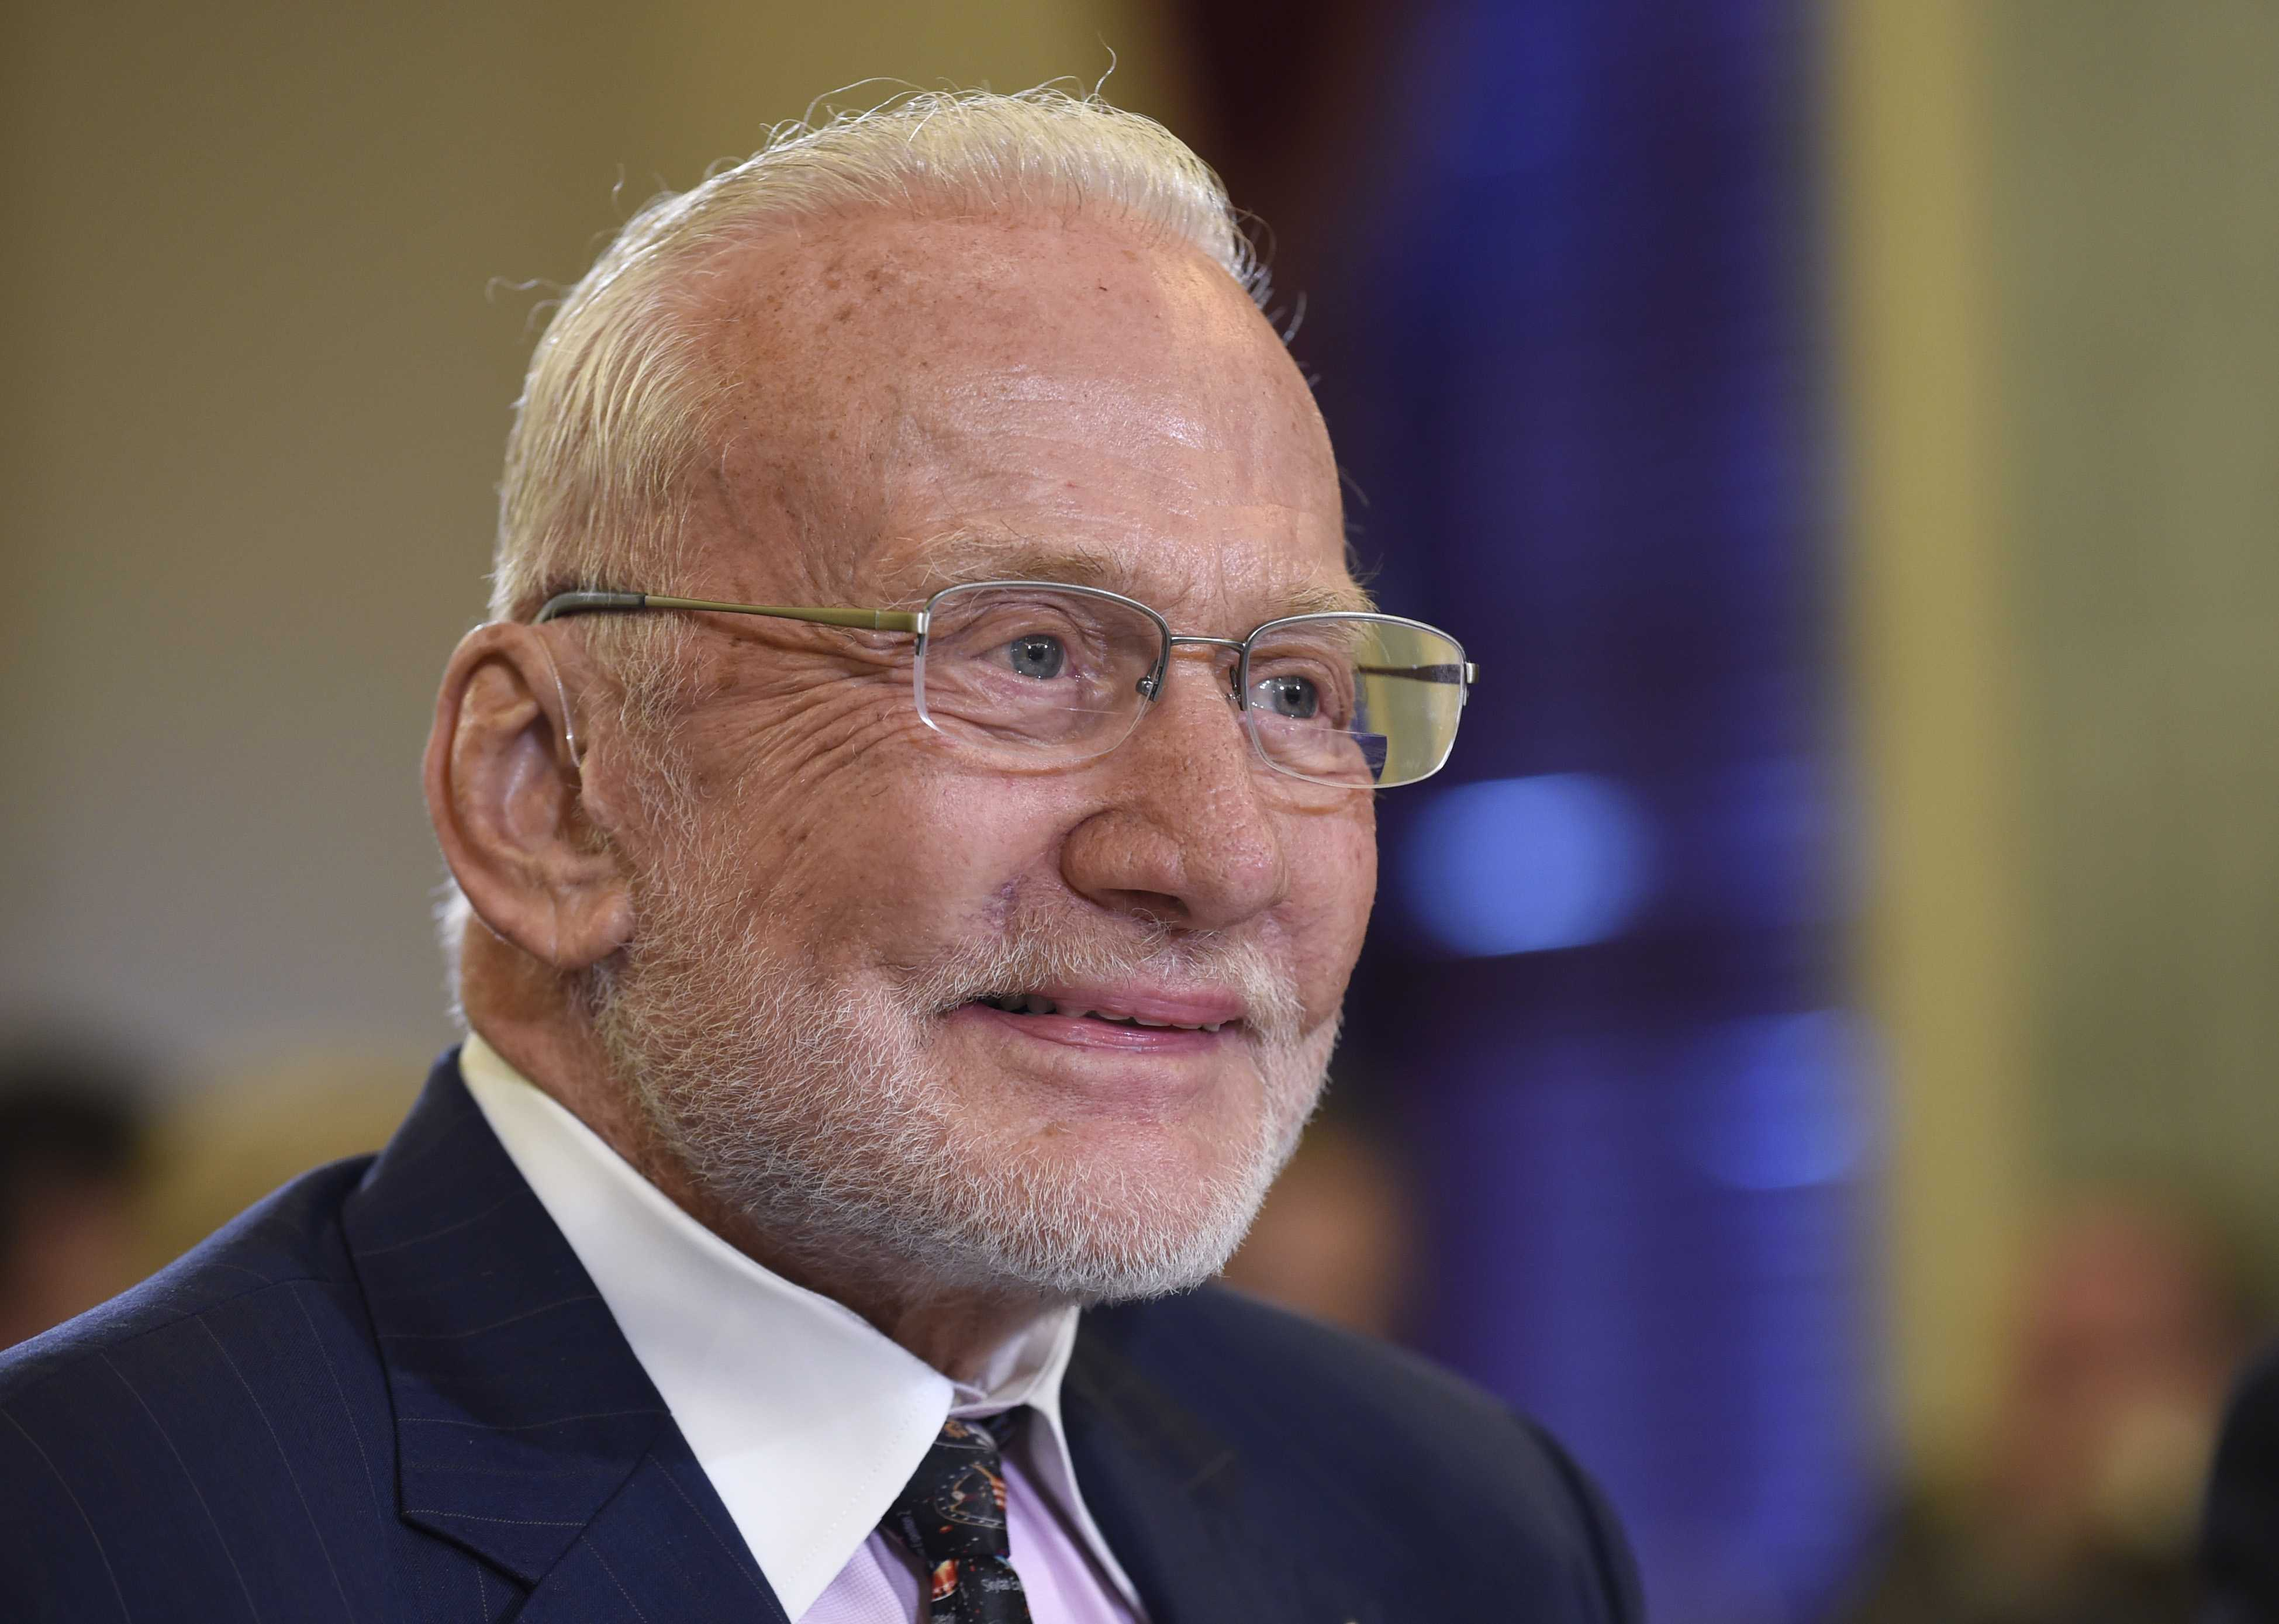 Buzz Aldrin, second man on moon, evacuated from South Pole